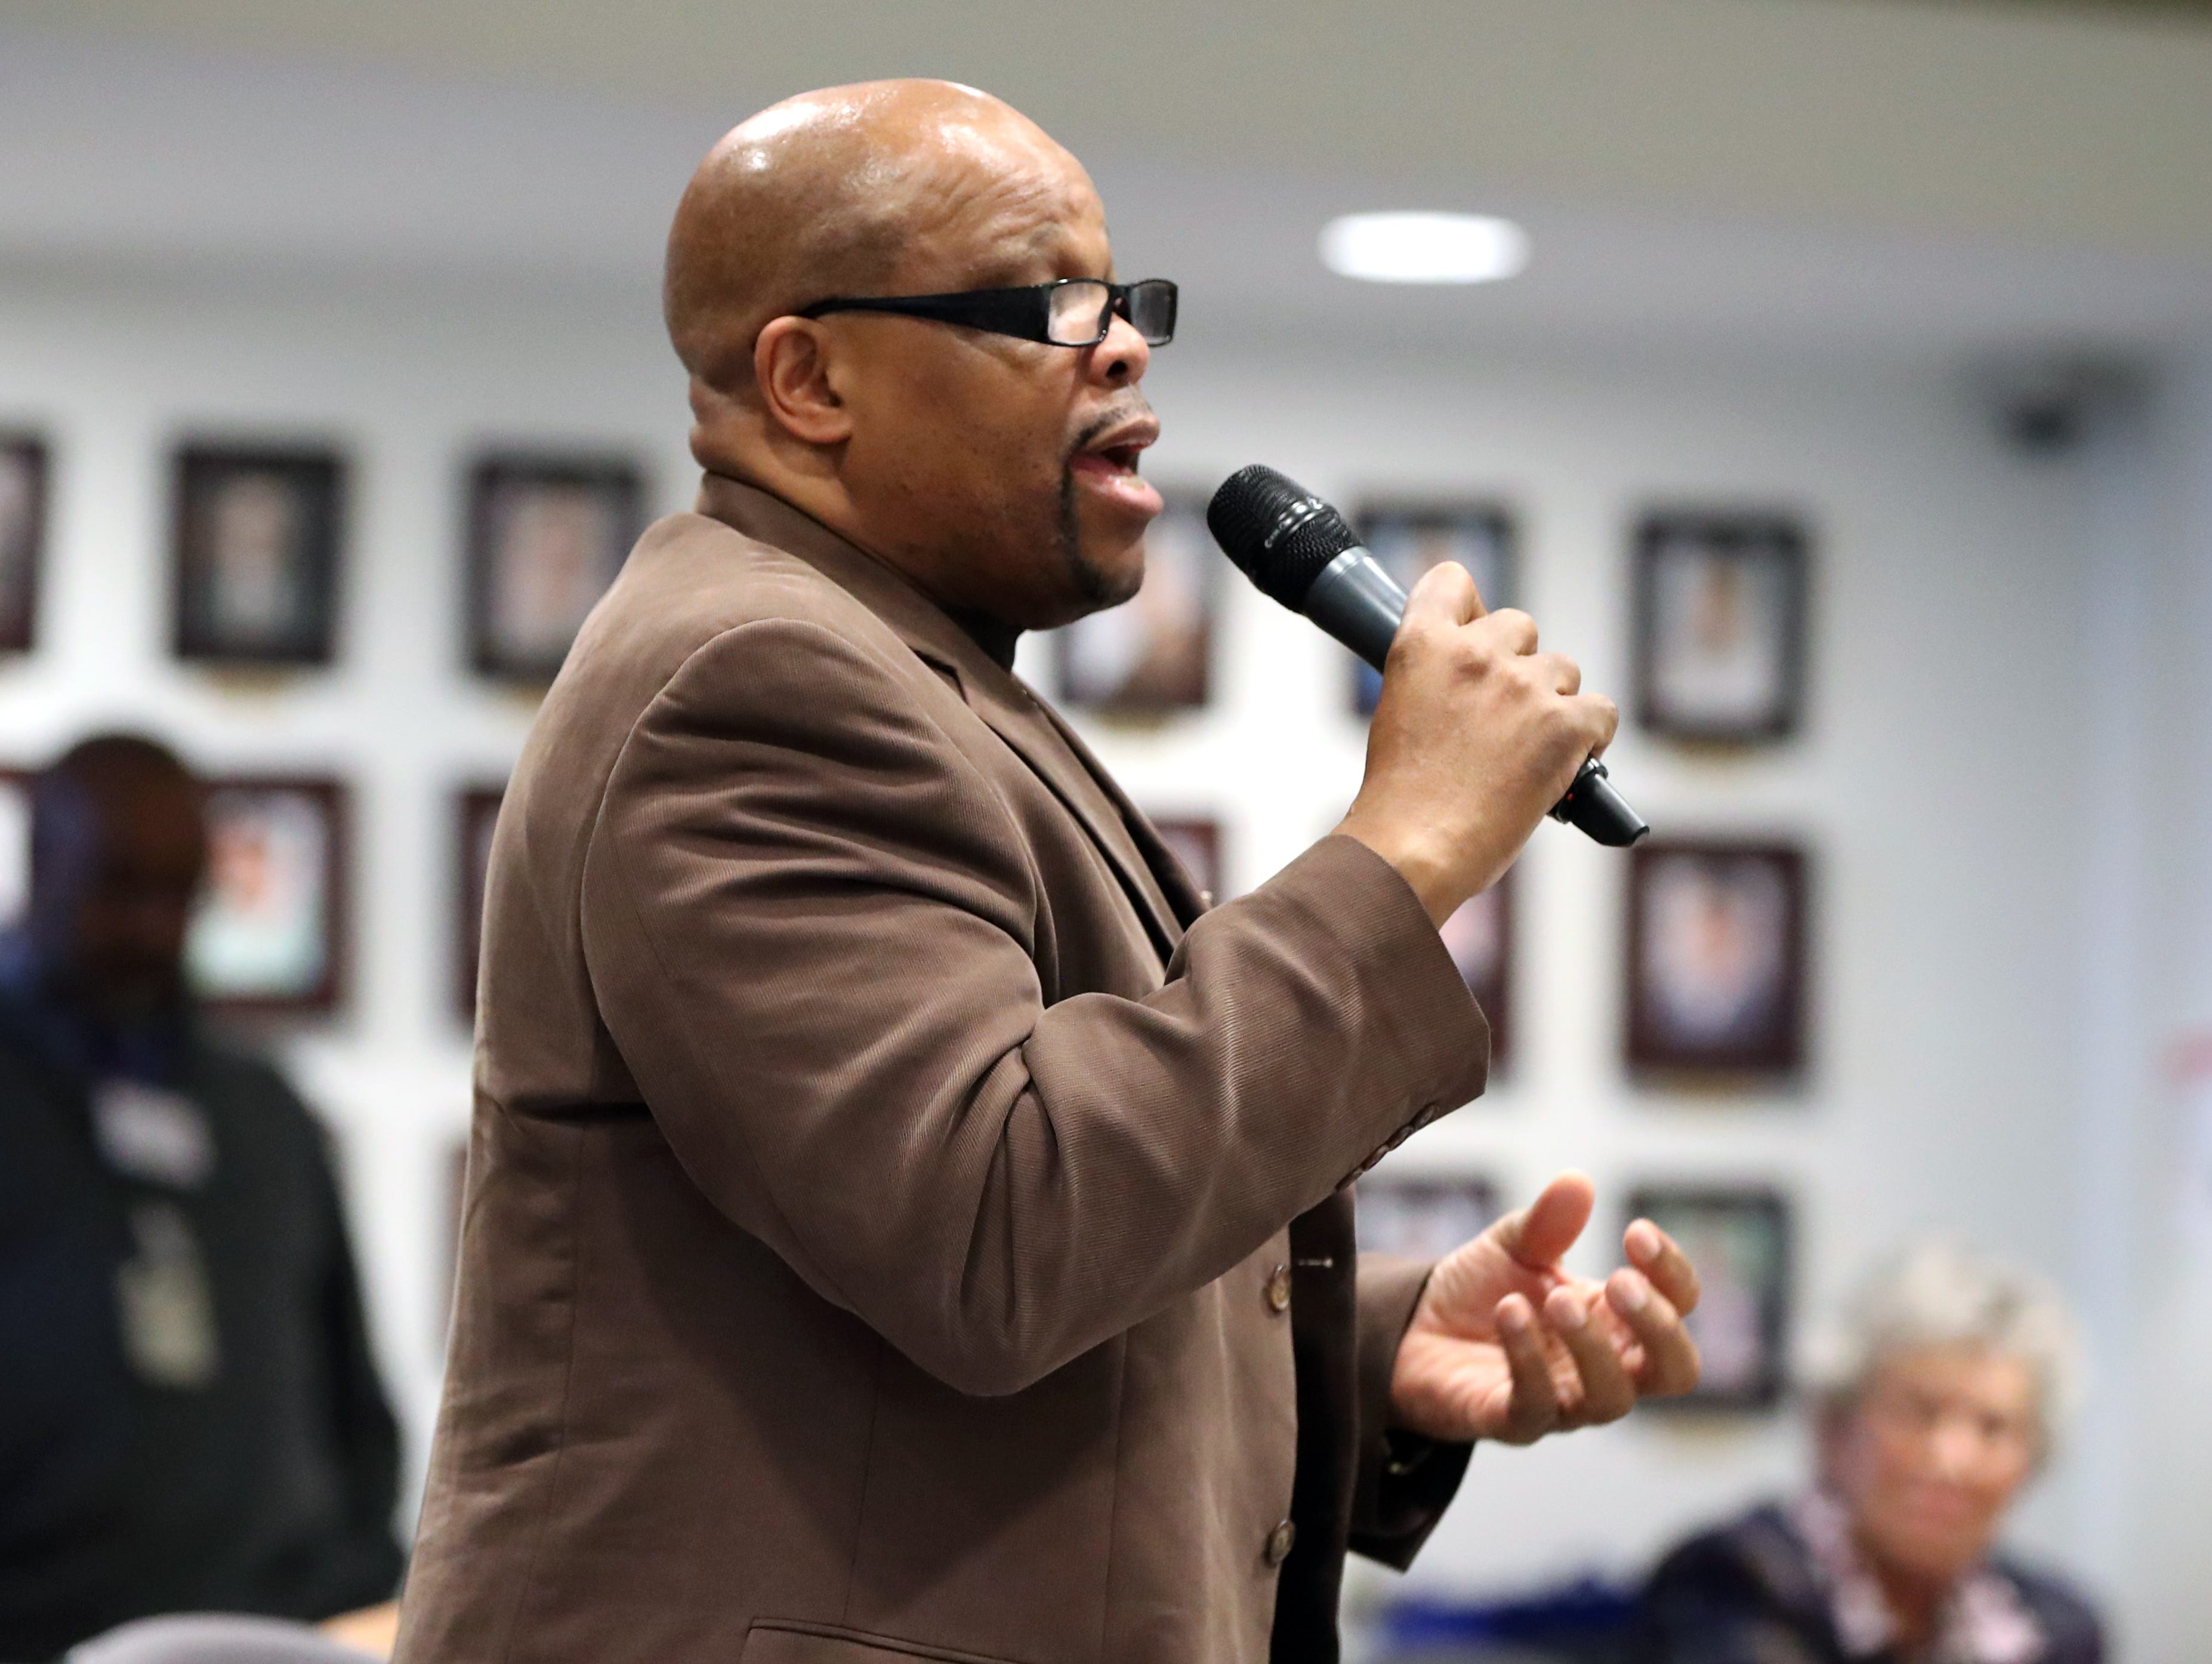 Minister Wesley King asks a question during the Interfaith Symposium held at Rockland Community College March 20, 2019.